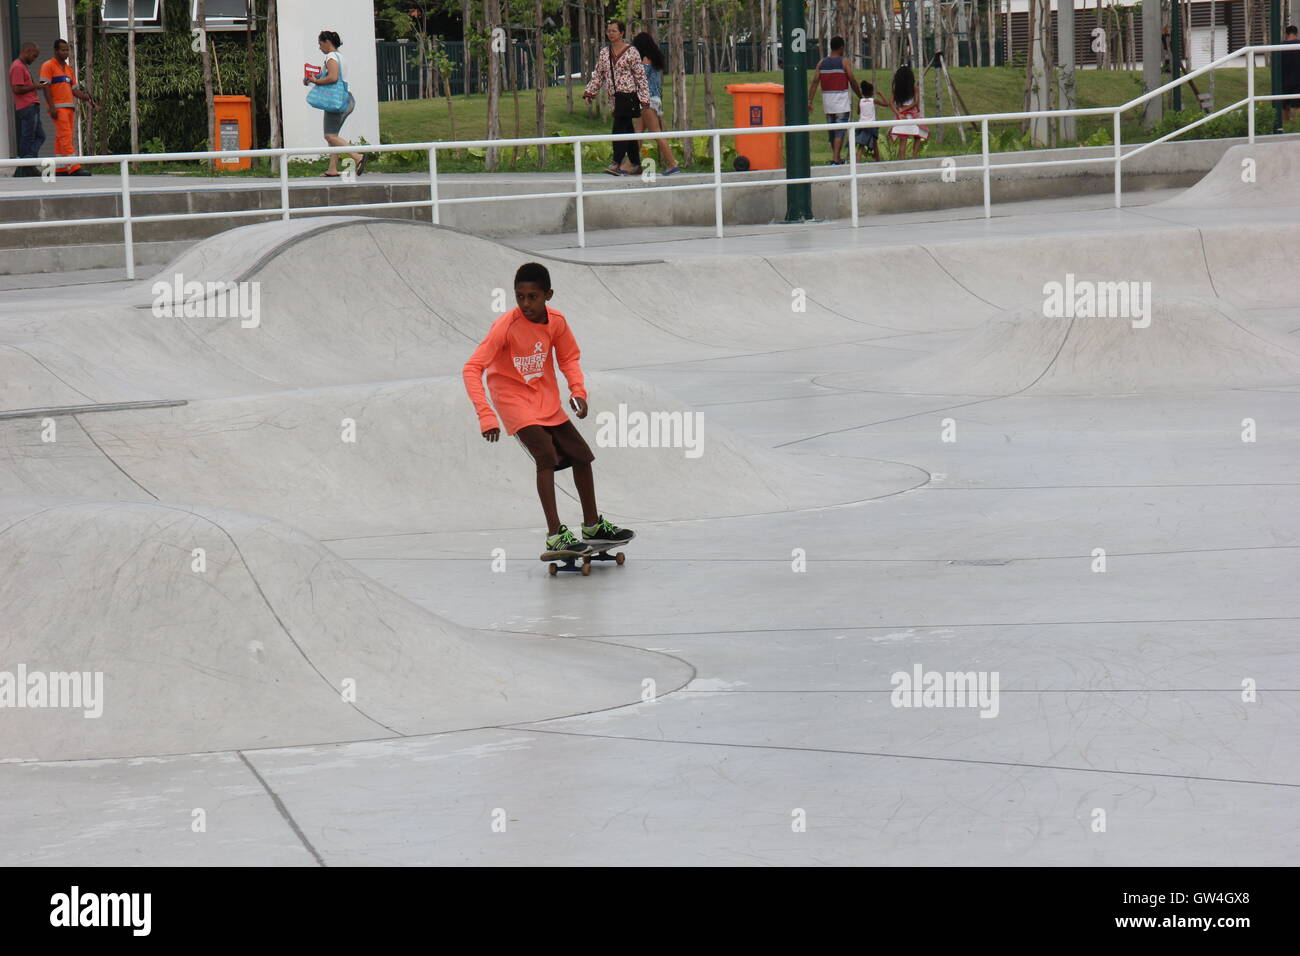 Rio de Janeiro, Brazil, 10 September, 2016: Madureira Park holds the world's largest public half pipe skate park, Stock Photo